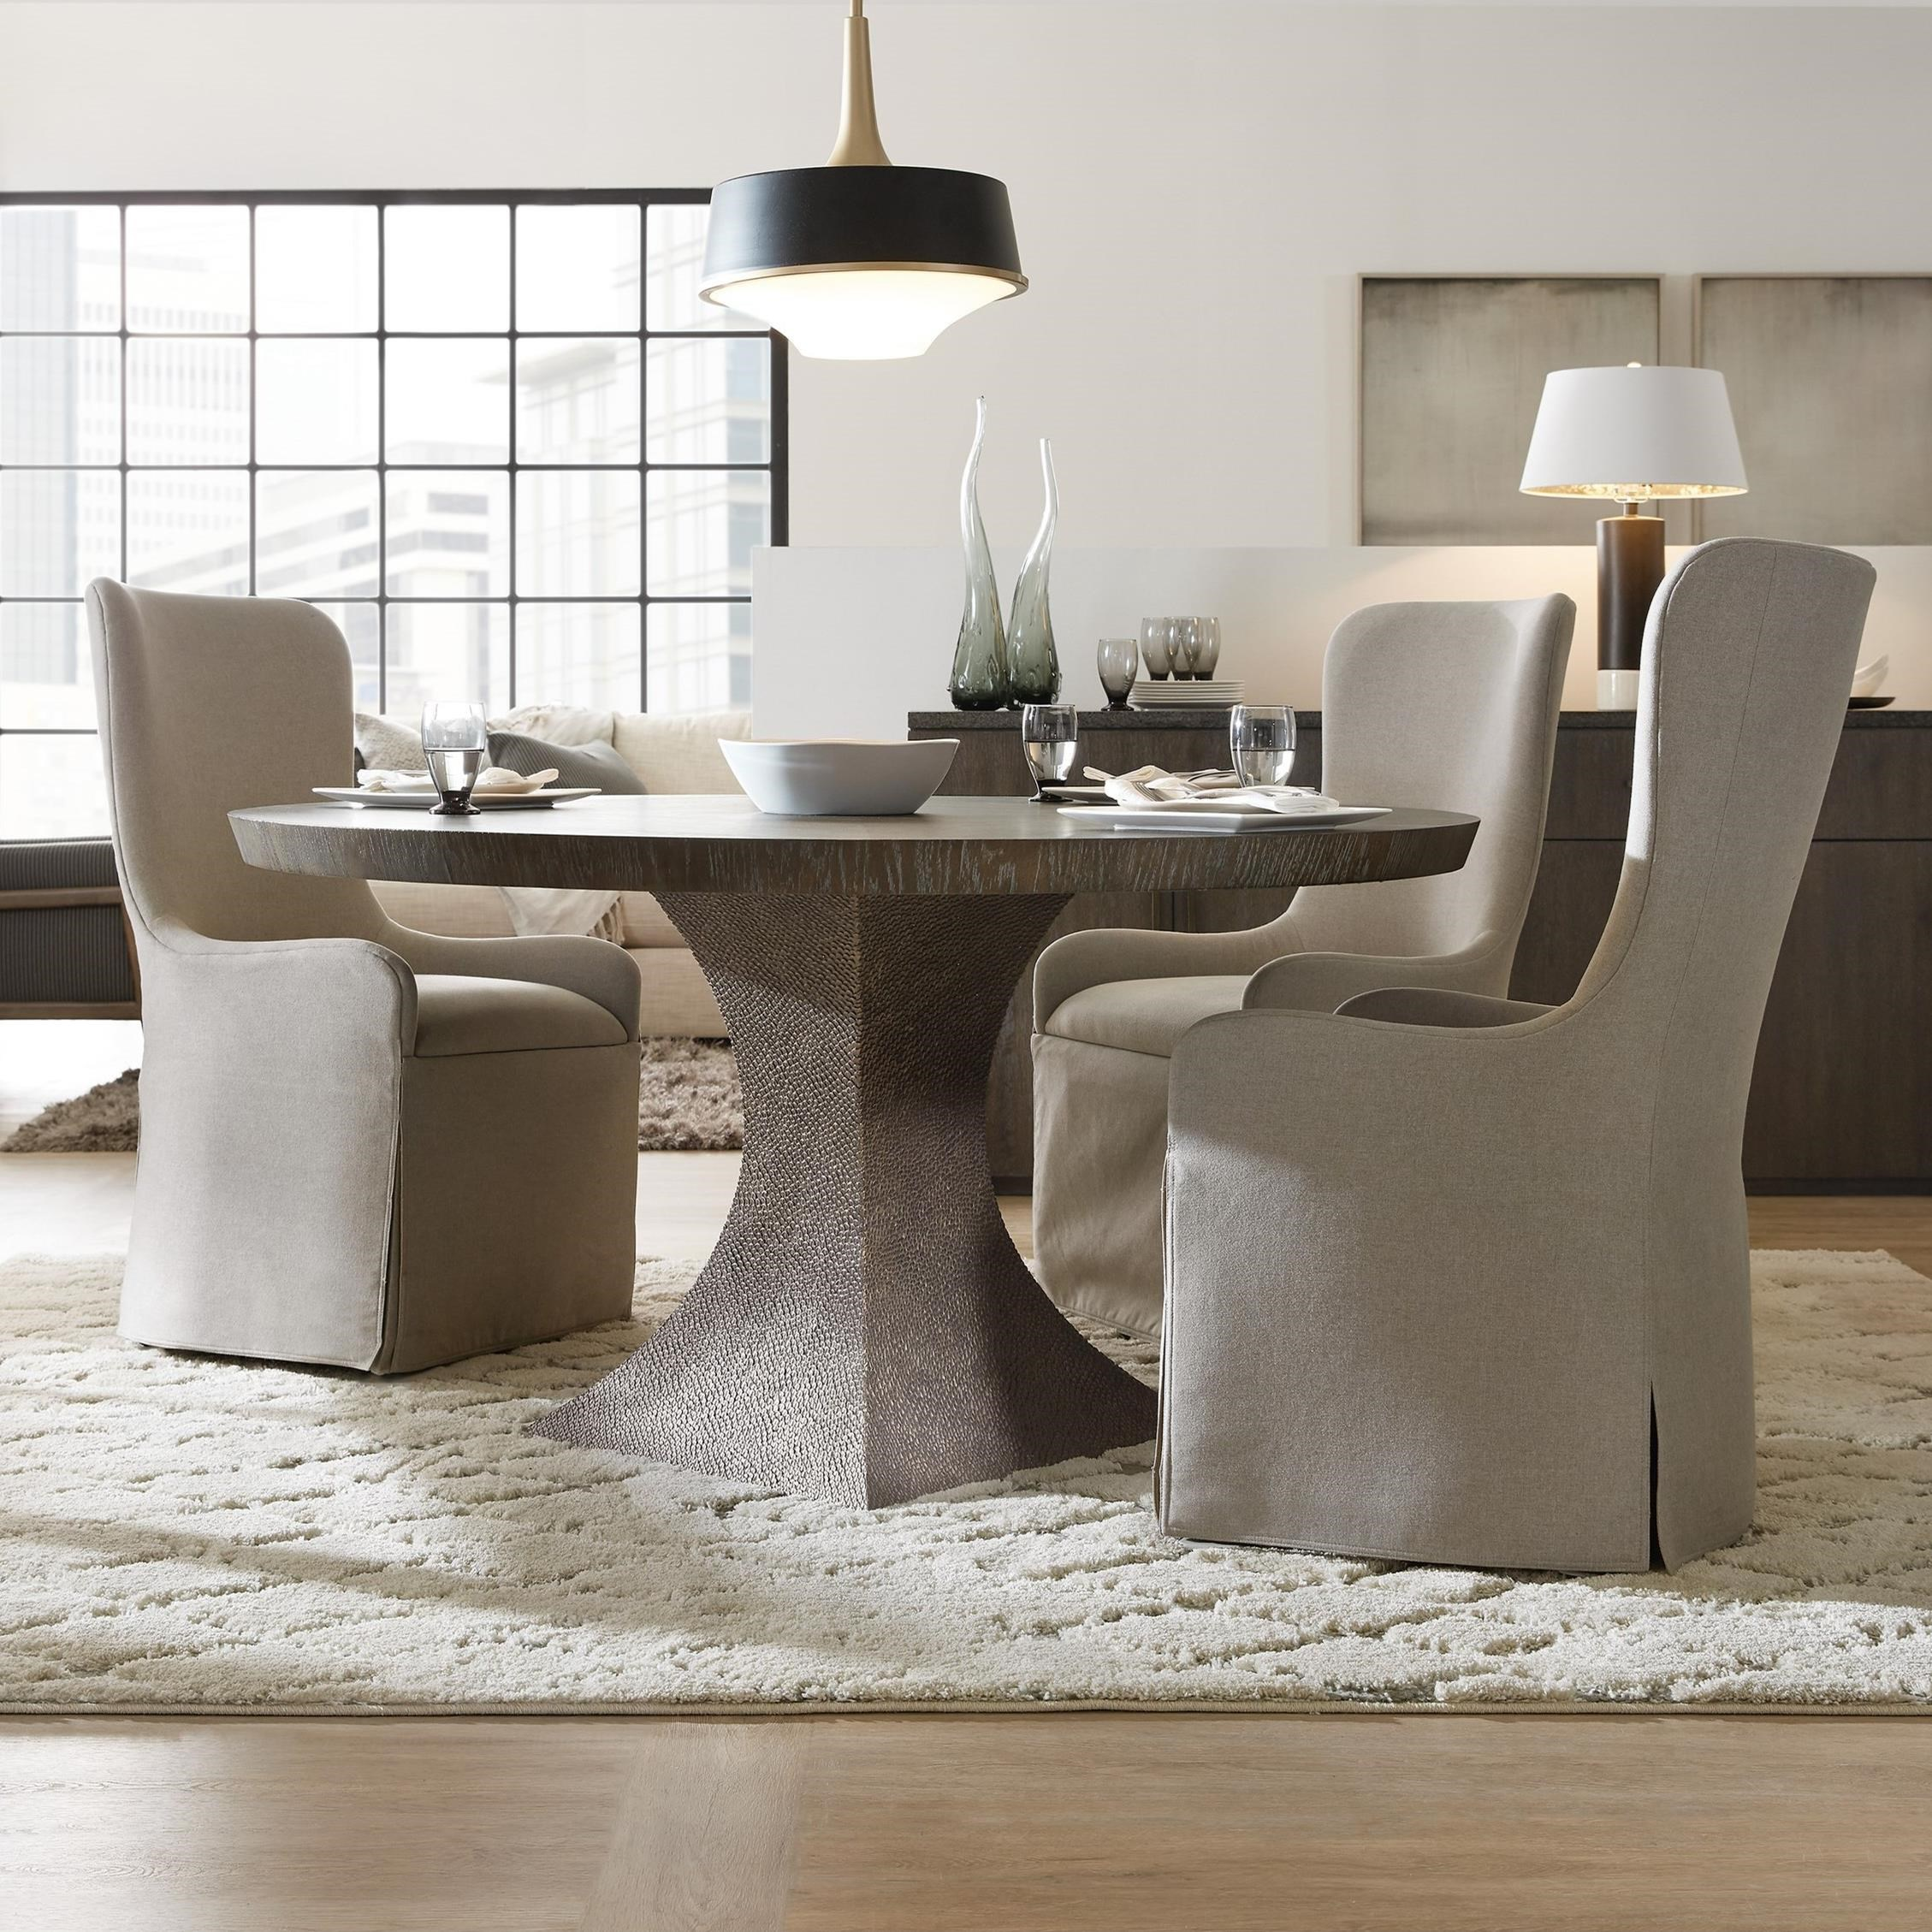 Miramar Aventura 4 Piece Table and Chair Set by Hooker Furniture at Stoney Creek Furniture